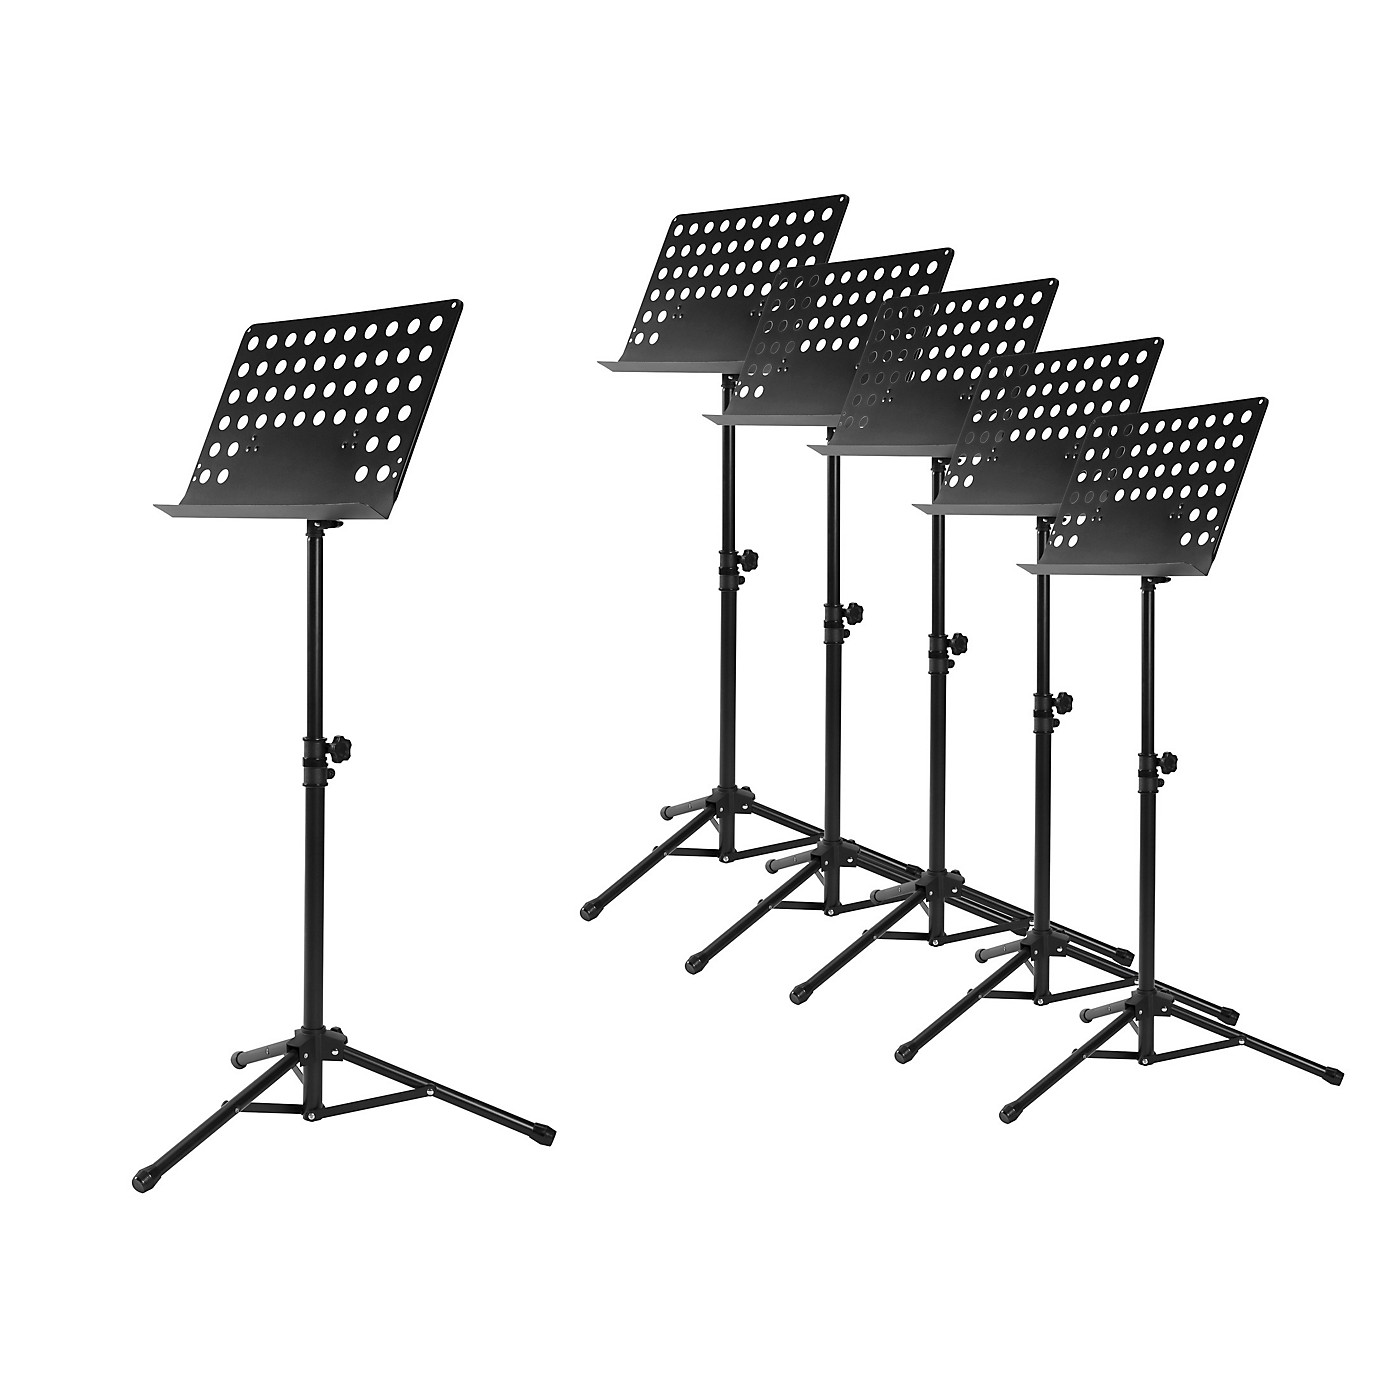 Musician's Gear Perforated Tripod Orchestral Music Stand, Black - 6 Pack thumbnail